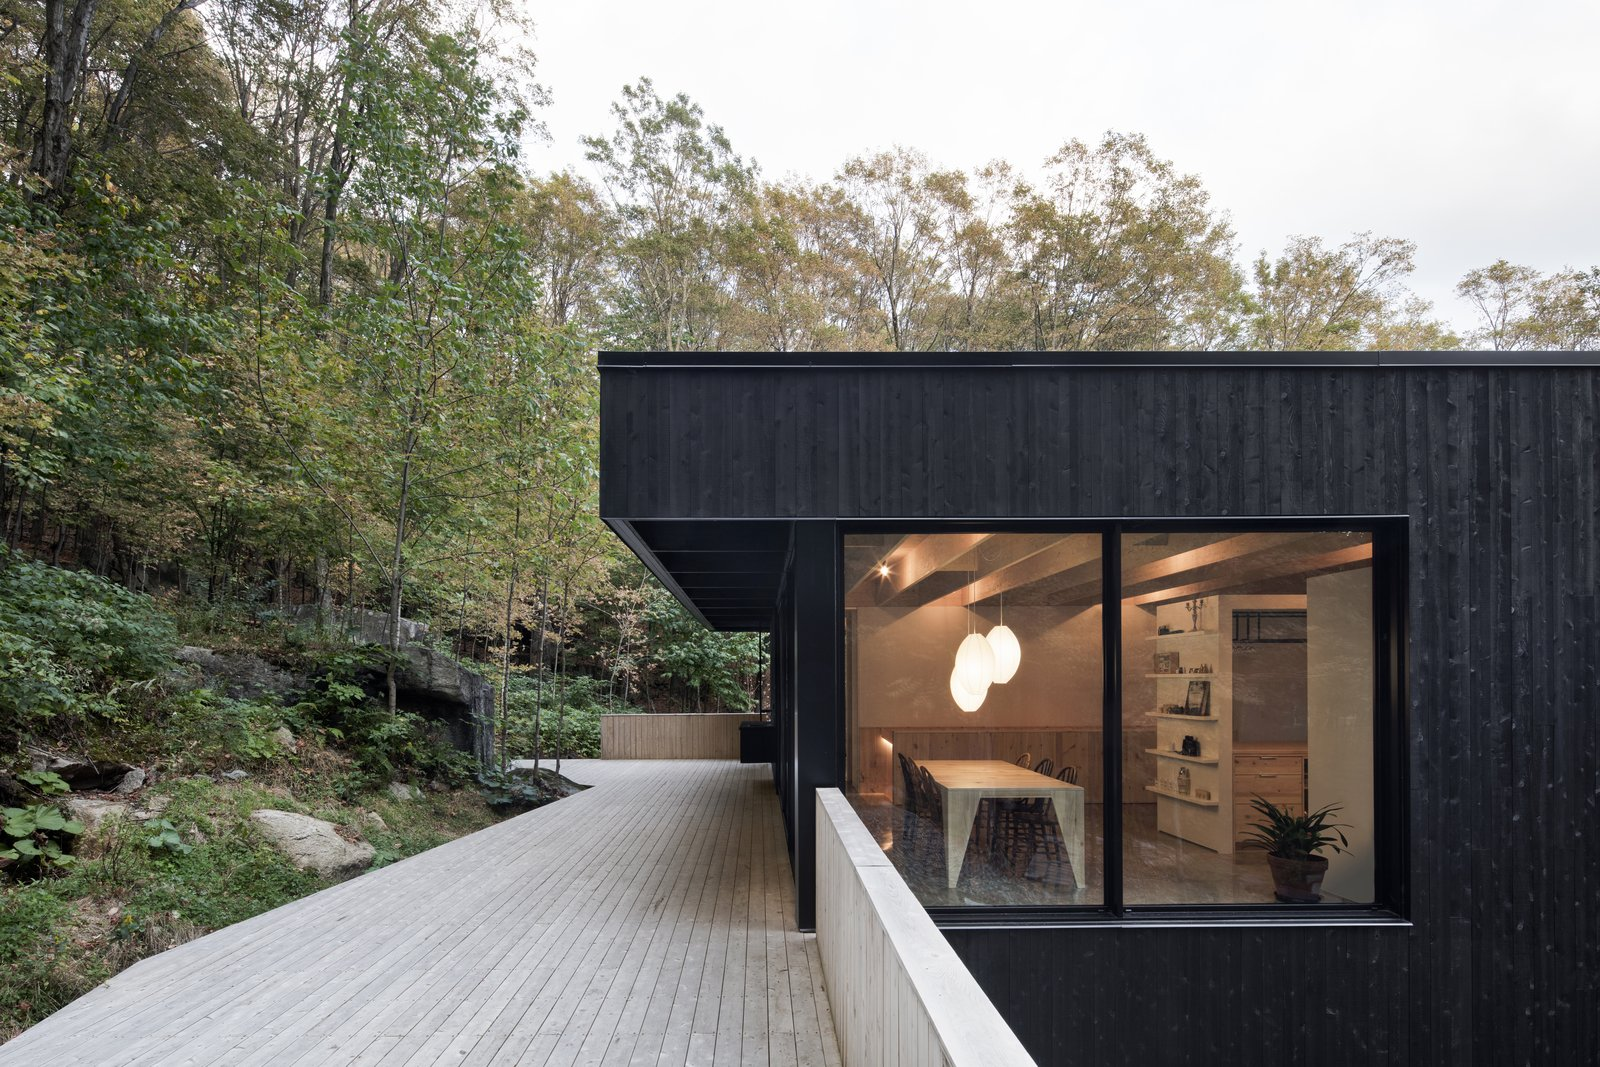 Outdoor, Decking Patio, Porch, Deck, Trees, Back Yard, Wood Patio, Porch, Deck, and Walkways The dark-stained exterior cladding stands in contrast to the light wood decking and warm interiors.   Best Photos from This Wood-Clad Home Is Built Into a Serene Mountain Slope